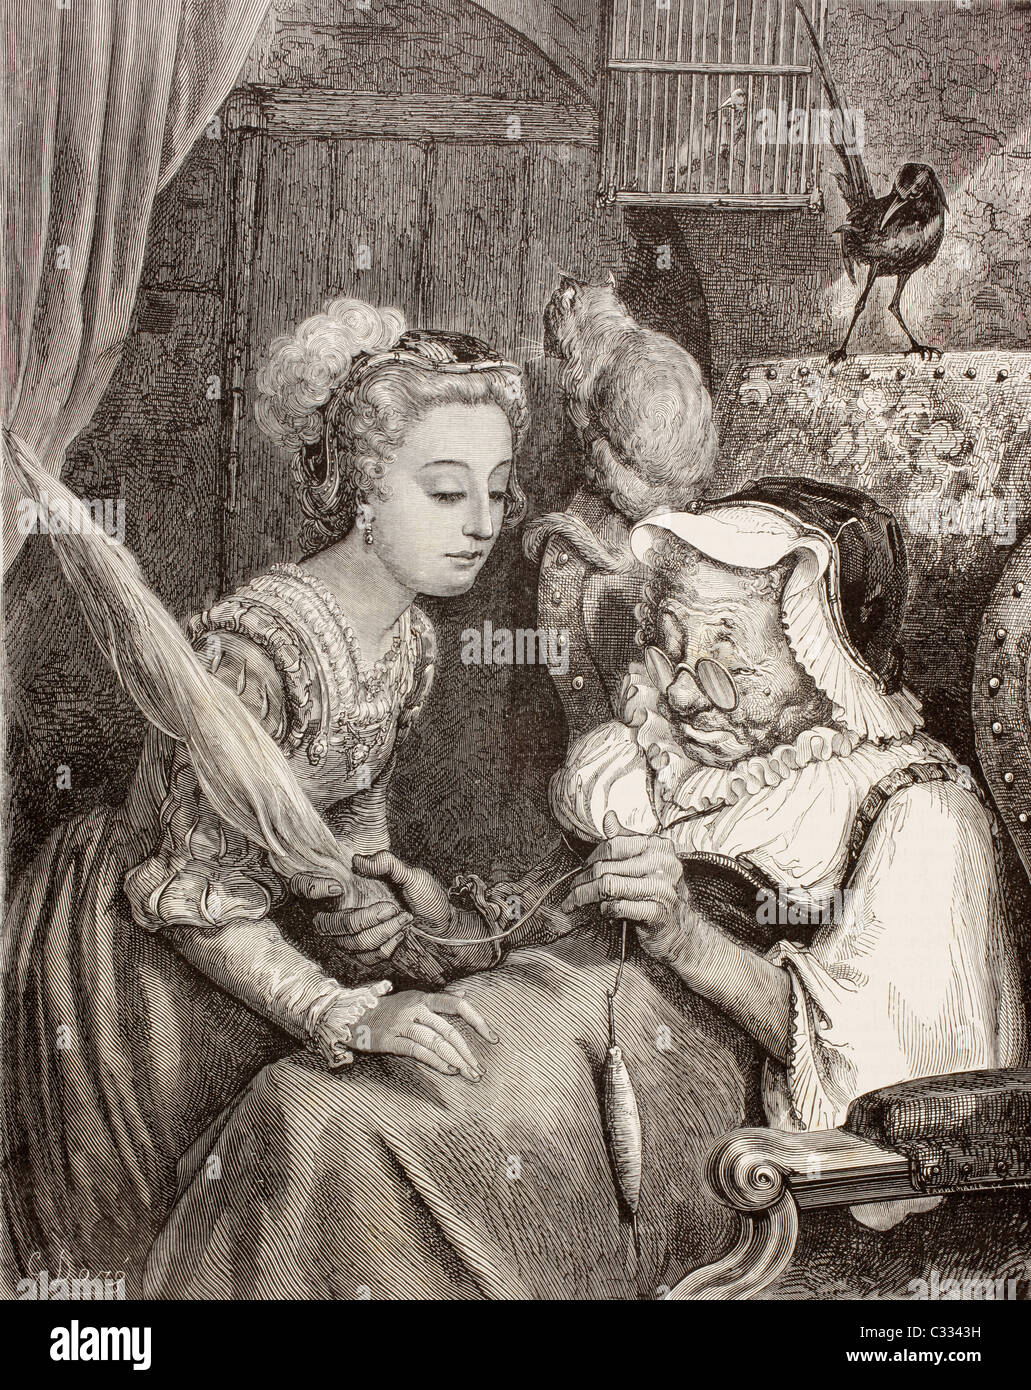 Scene from Sleeping Beauty by Charles Perrault. The Princess finds an old woman spinning, not knowing she is the - Stock Image